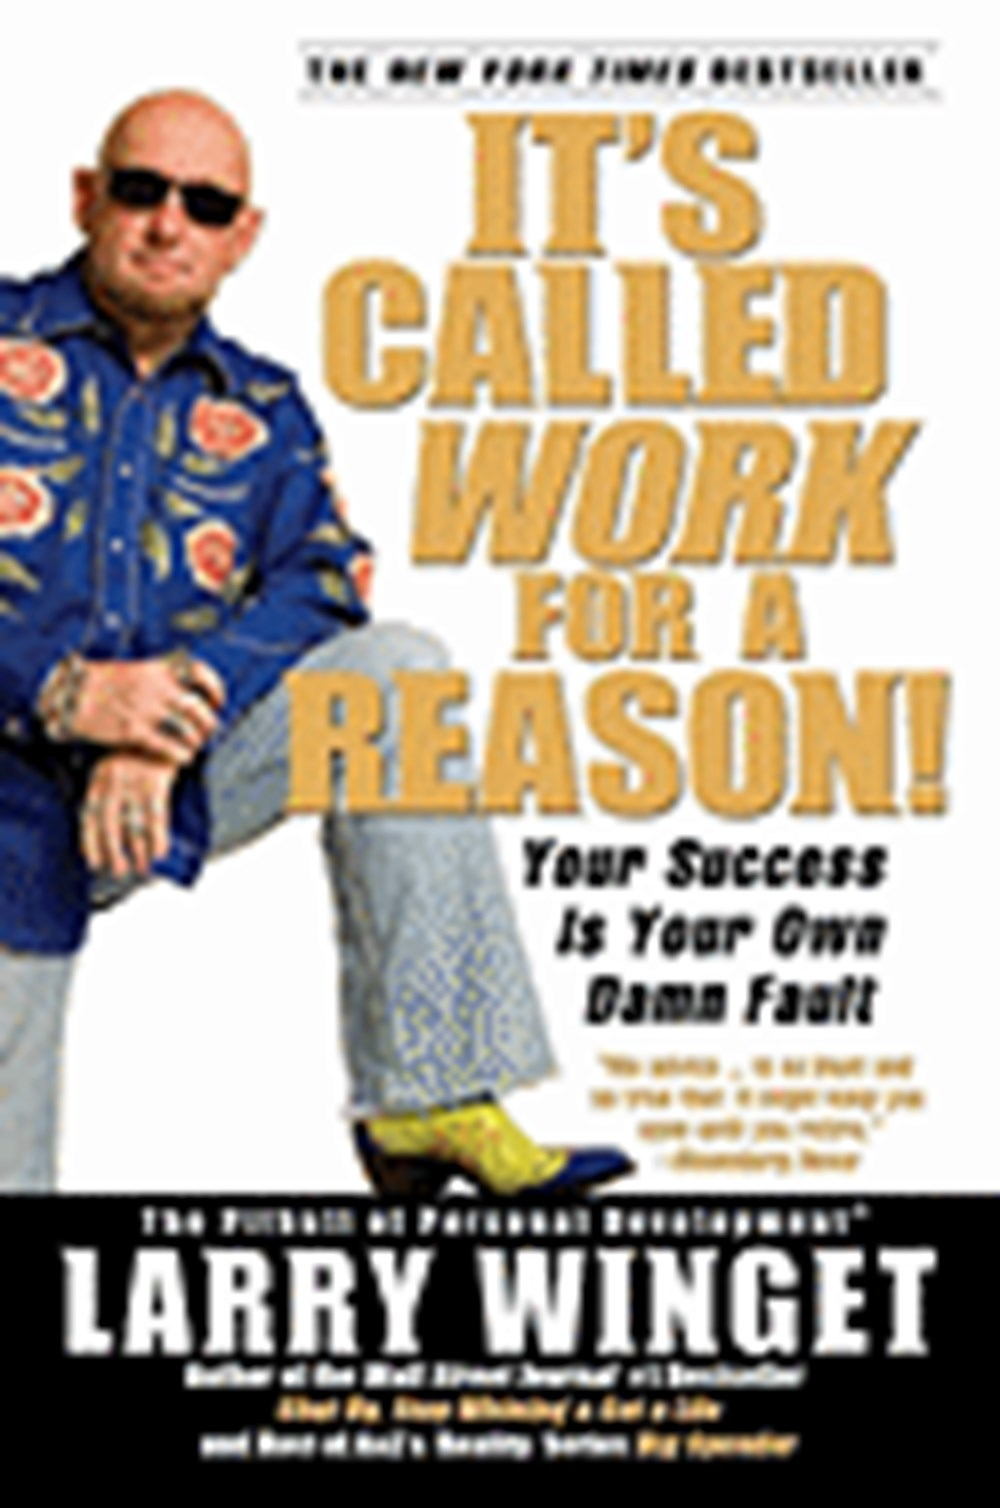 It's Called Work for a Reason! Your Success Is Your Own Damn Fault